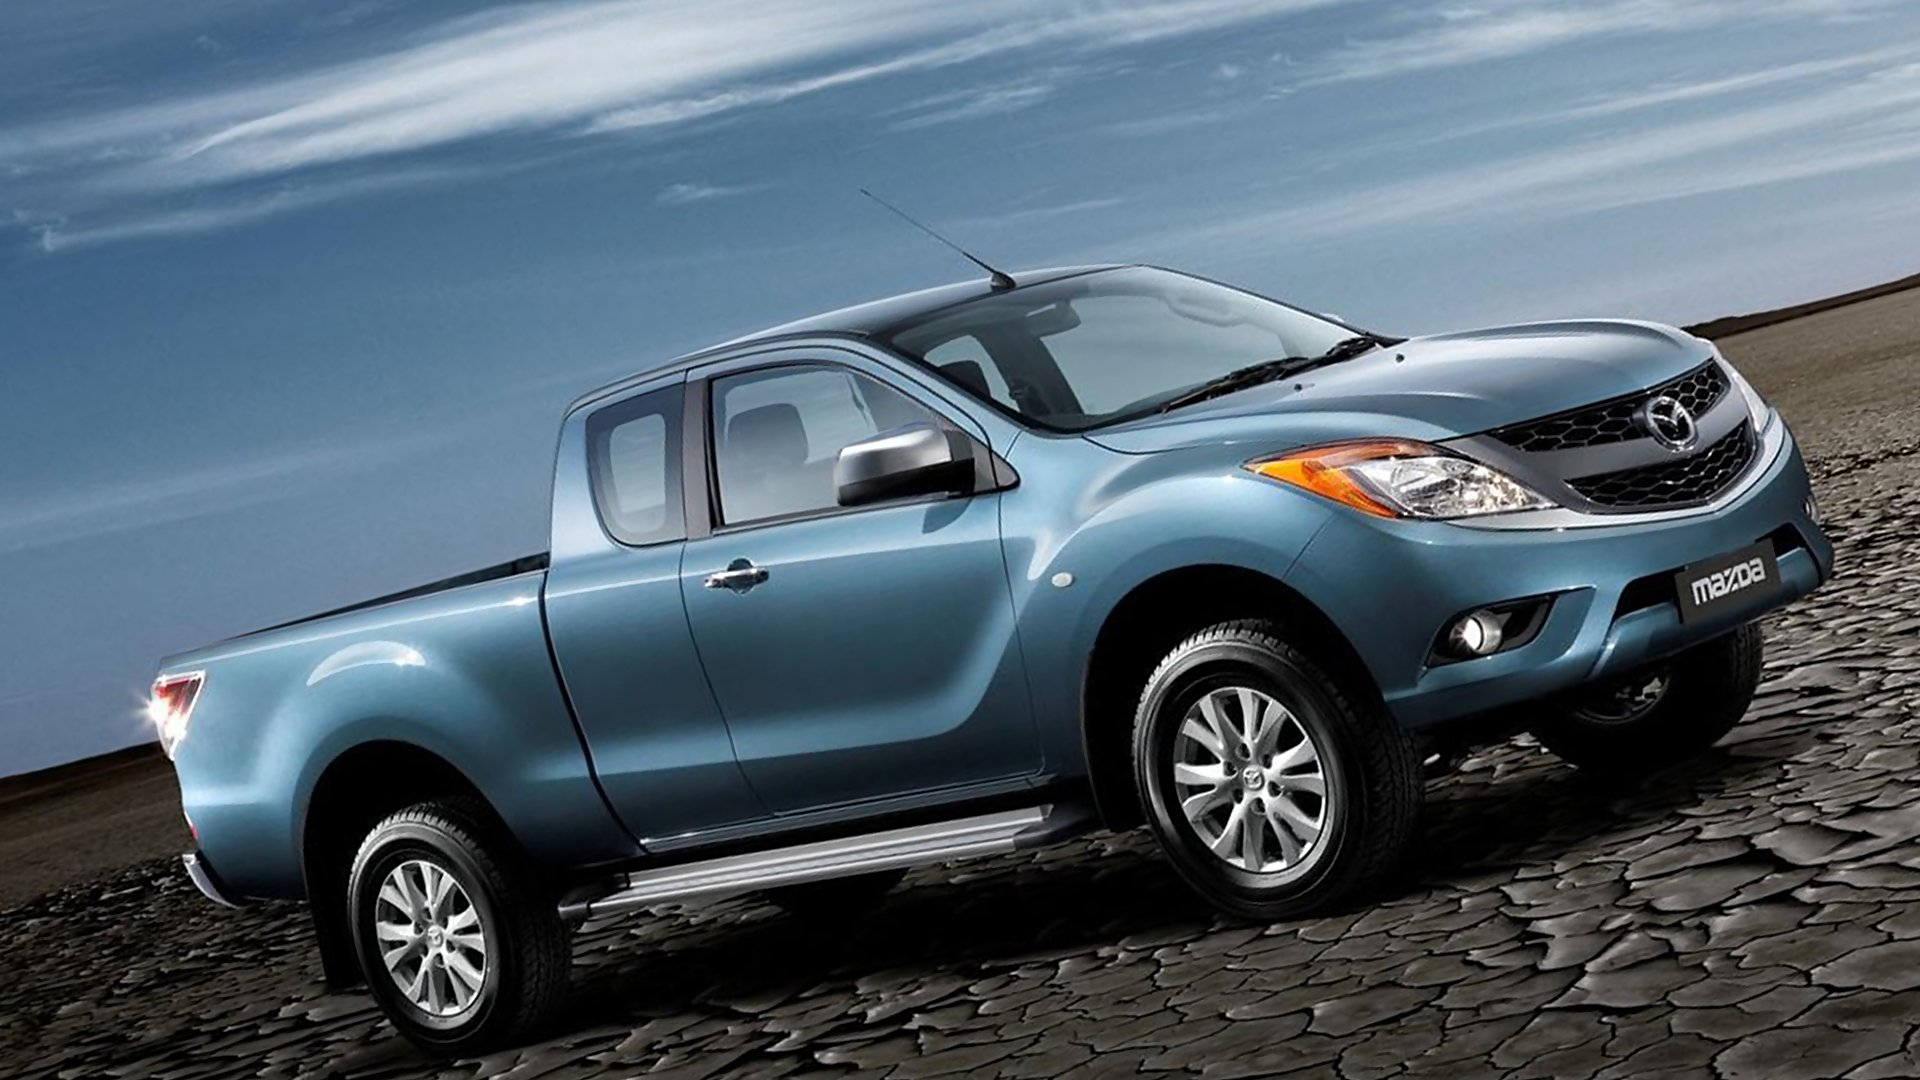 New 2019 Mazda BT 50 Wallpaper HD Desktop